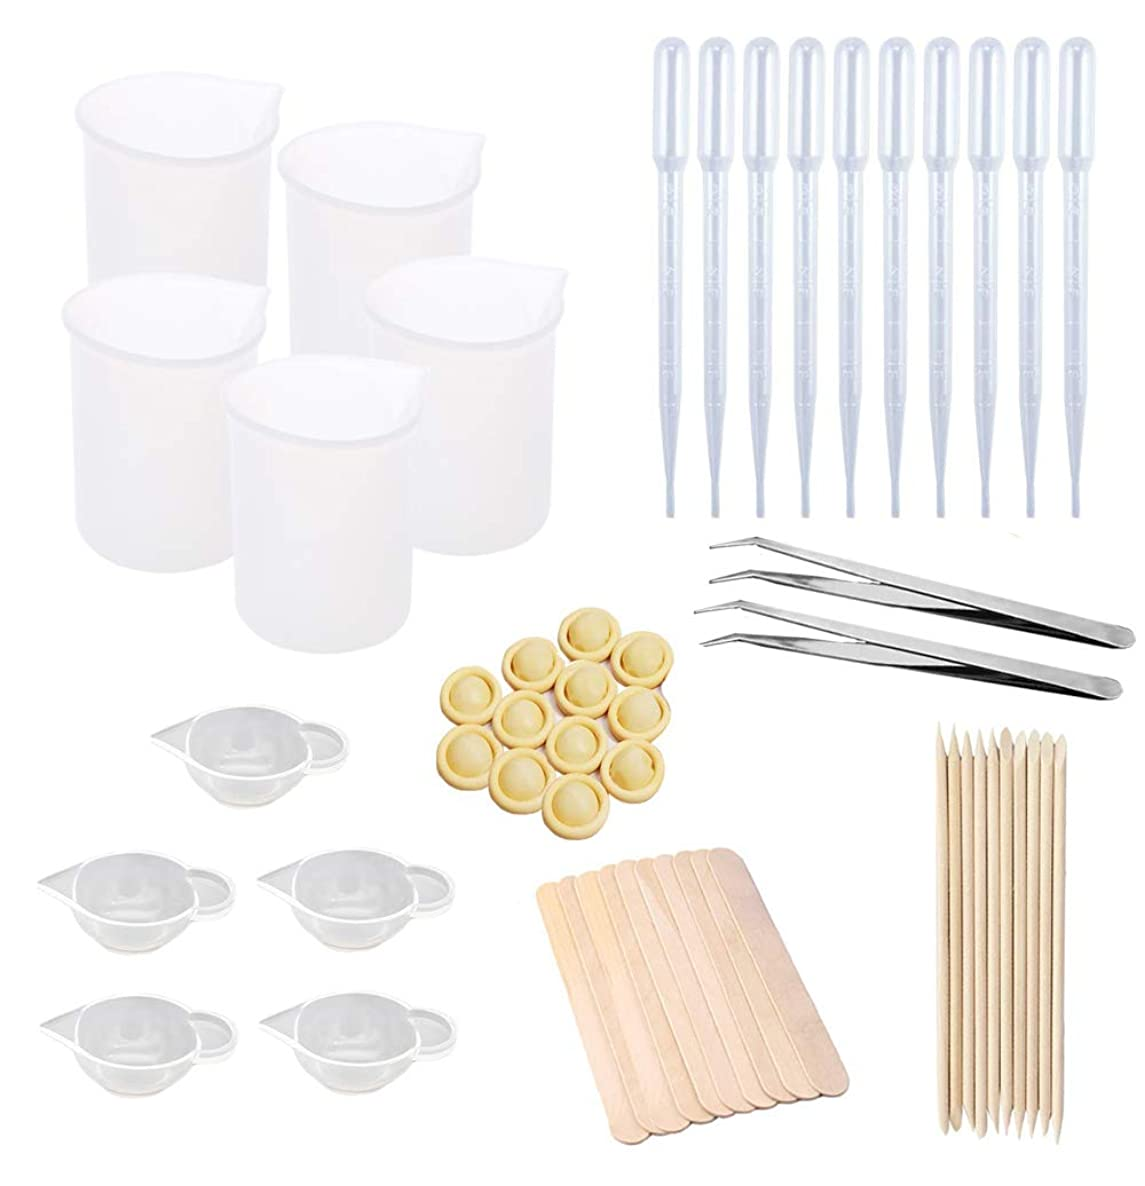 Silicone Mixing Cups for Resin 62 Pieces Resin Cups Casting Tools Kit 100ml Measuring Cups Mixing Cups, Epoxy Resin Cups, Glue Tools Sticks Pipettes Finger Cots for Epoxy Resin, Casting Molds (62 Pcs)